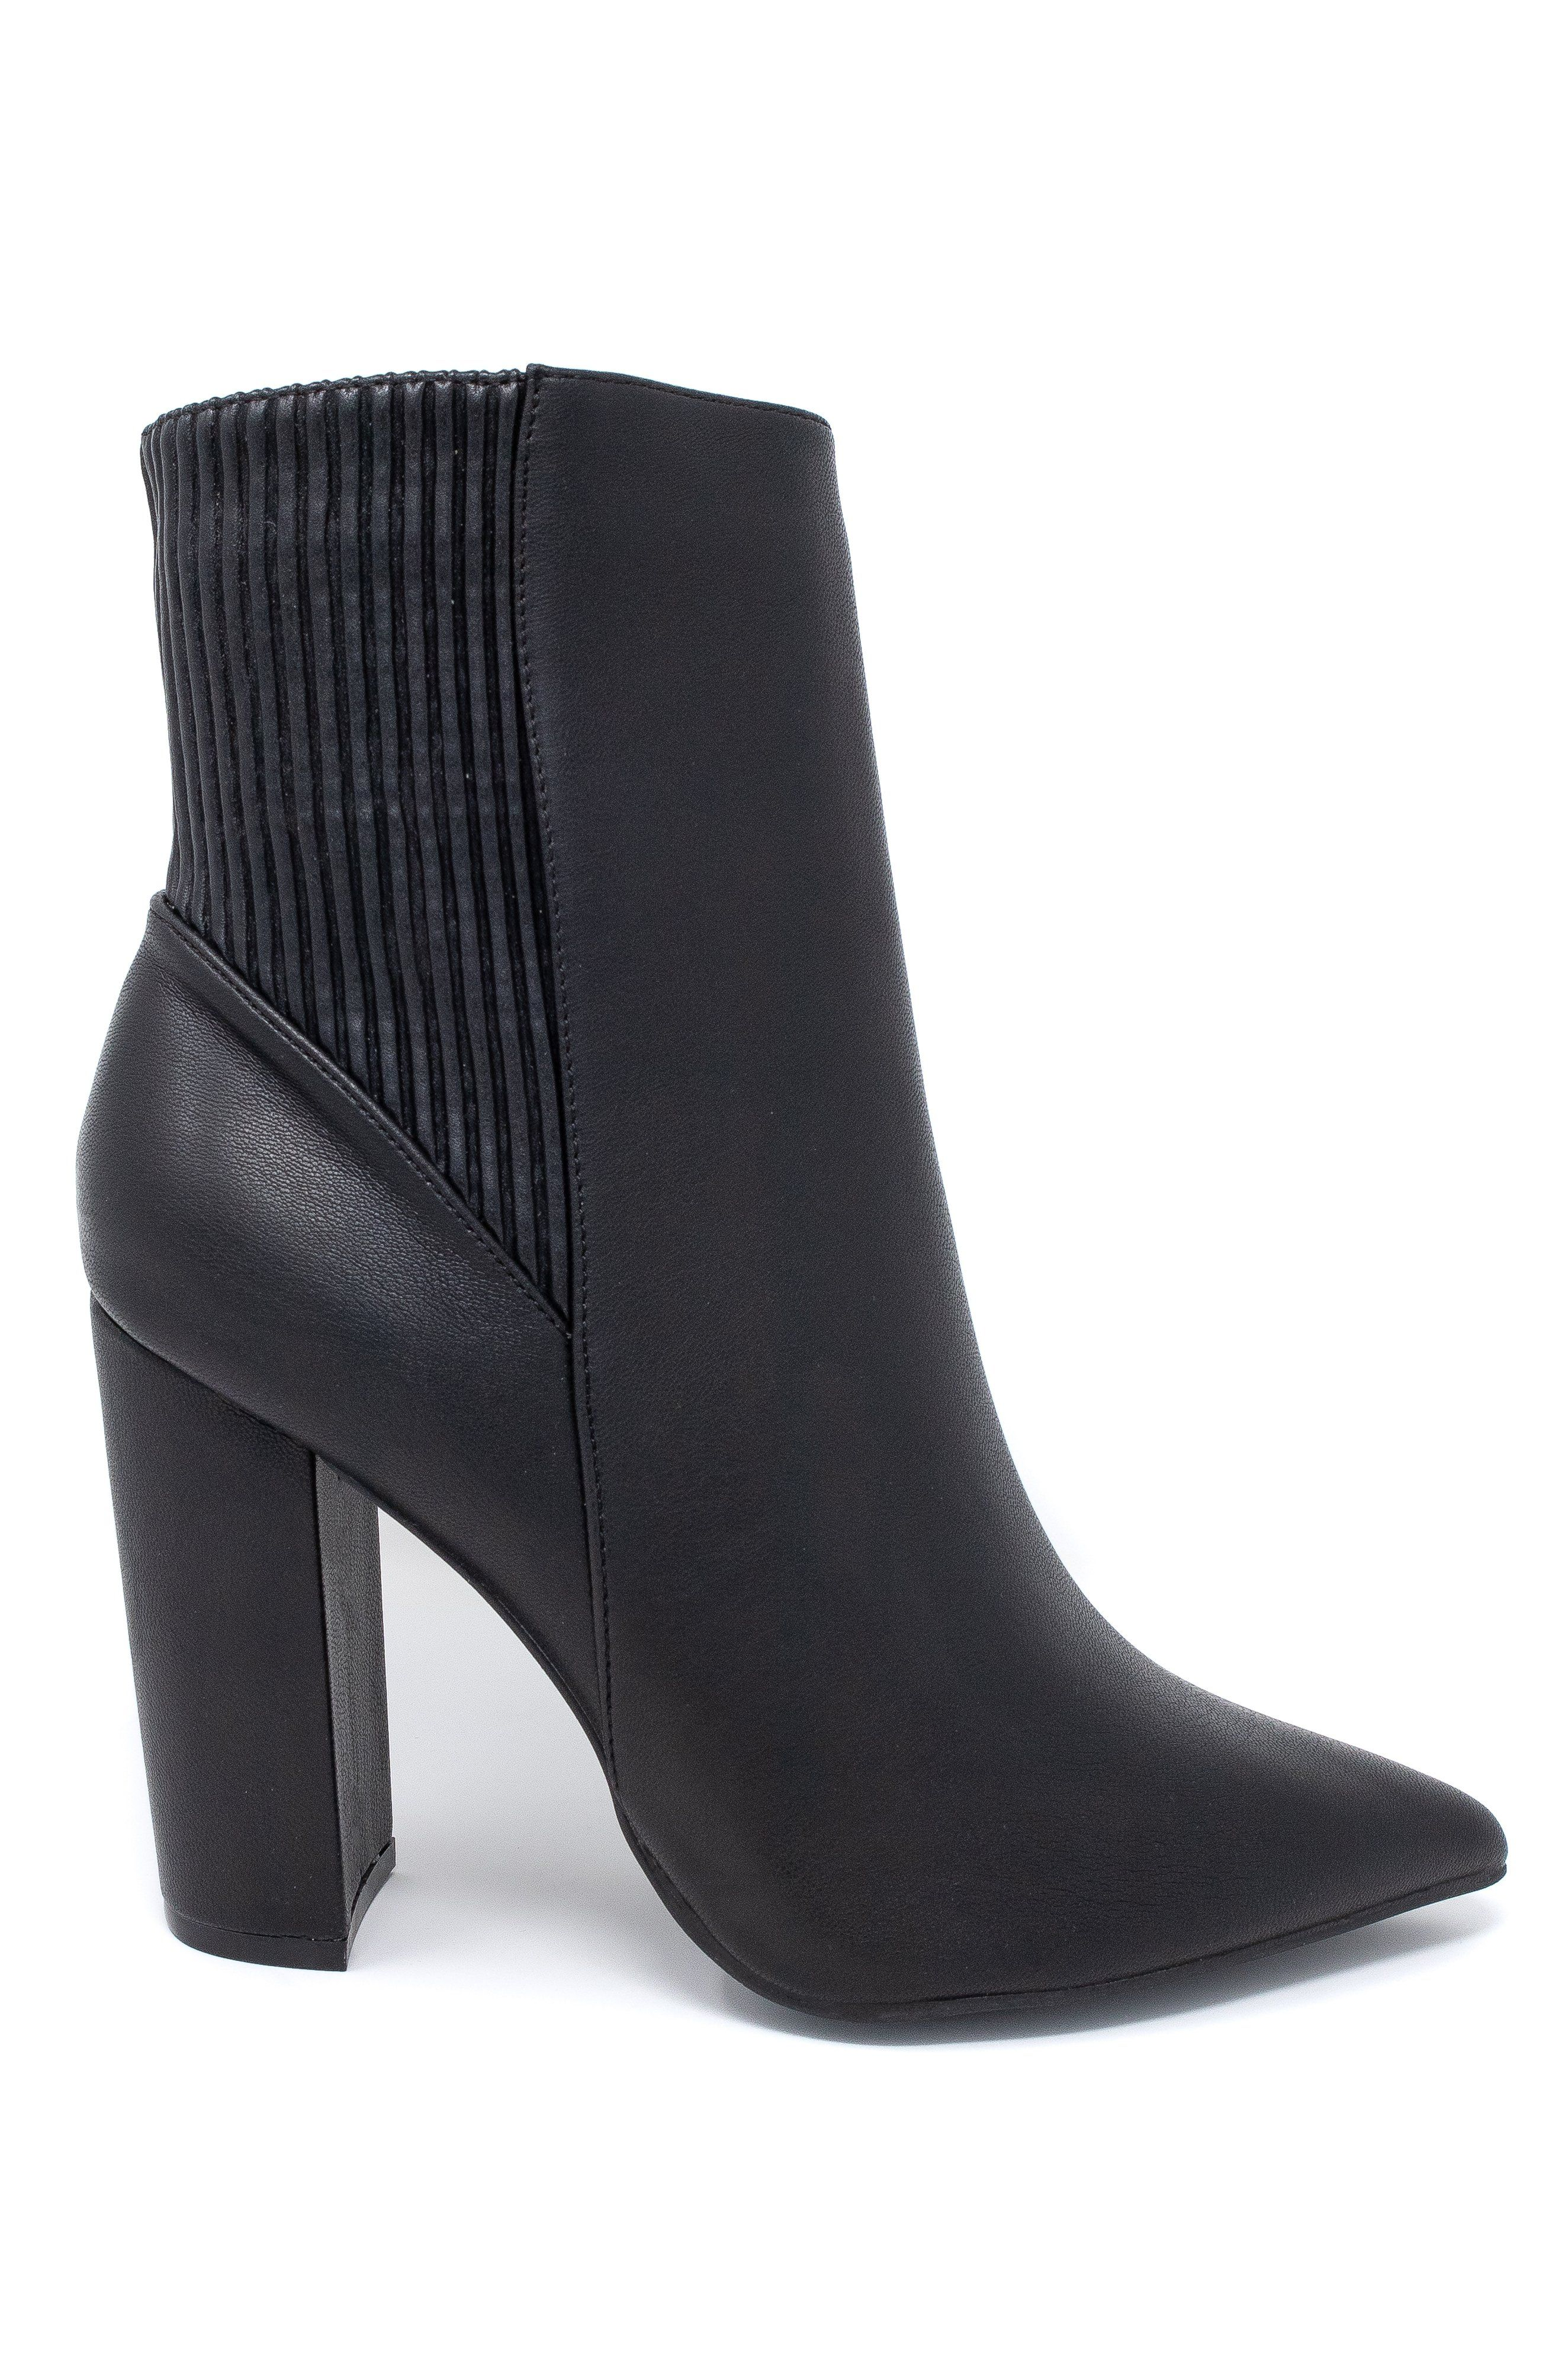 Premium vegan leather Side zipper closure 4 inch heel height (approx) Pointed toe Fits most true to size